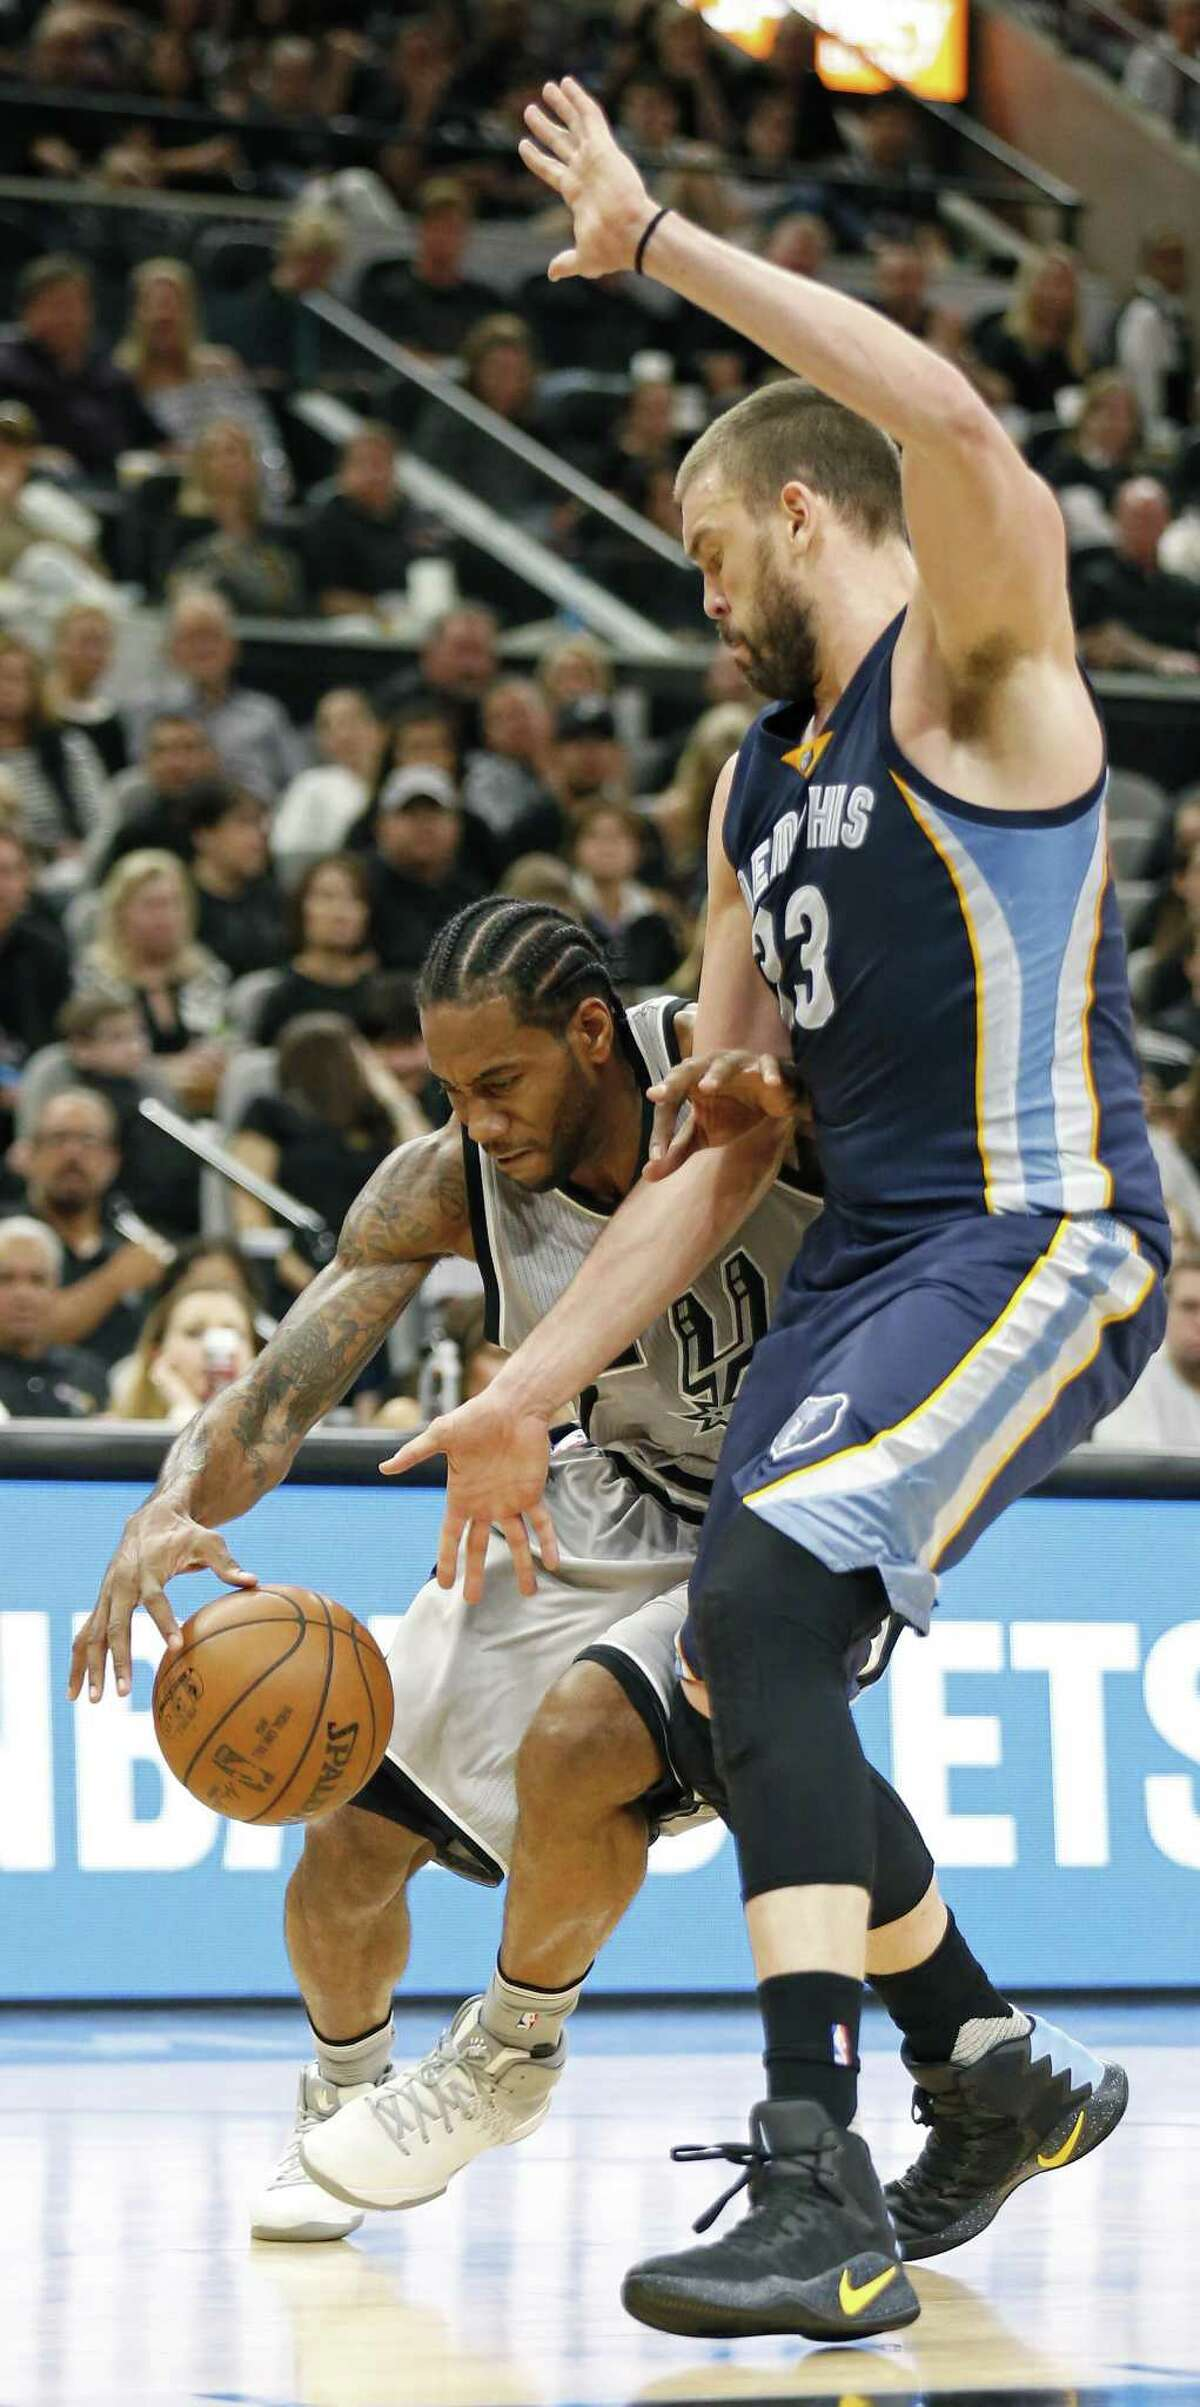 The Spurs' Kawhi Leonard tries to maneuver around Grizzlies center Marc Gasol during the first half. Leonard and Gasol finished with 32 points apiece to lead their respective teams.